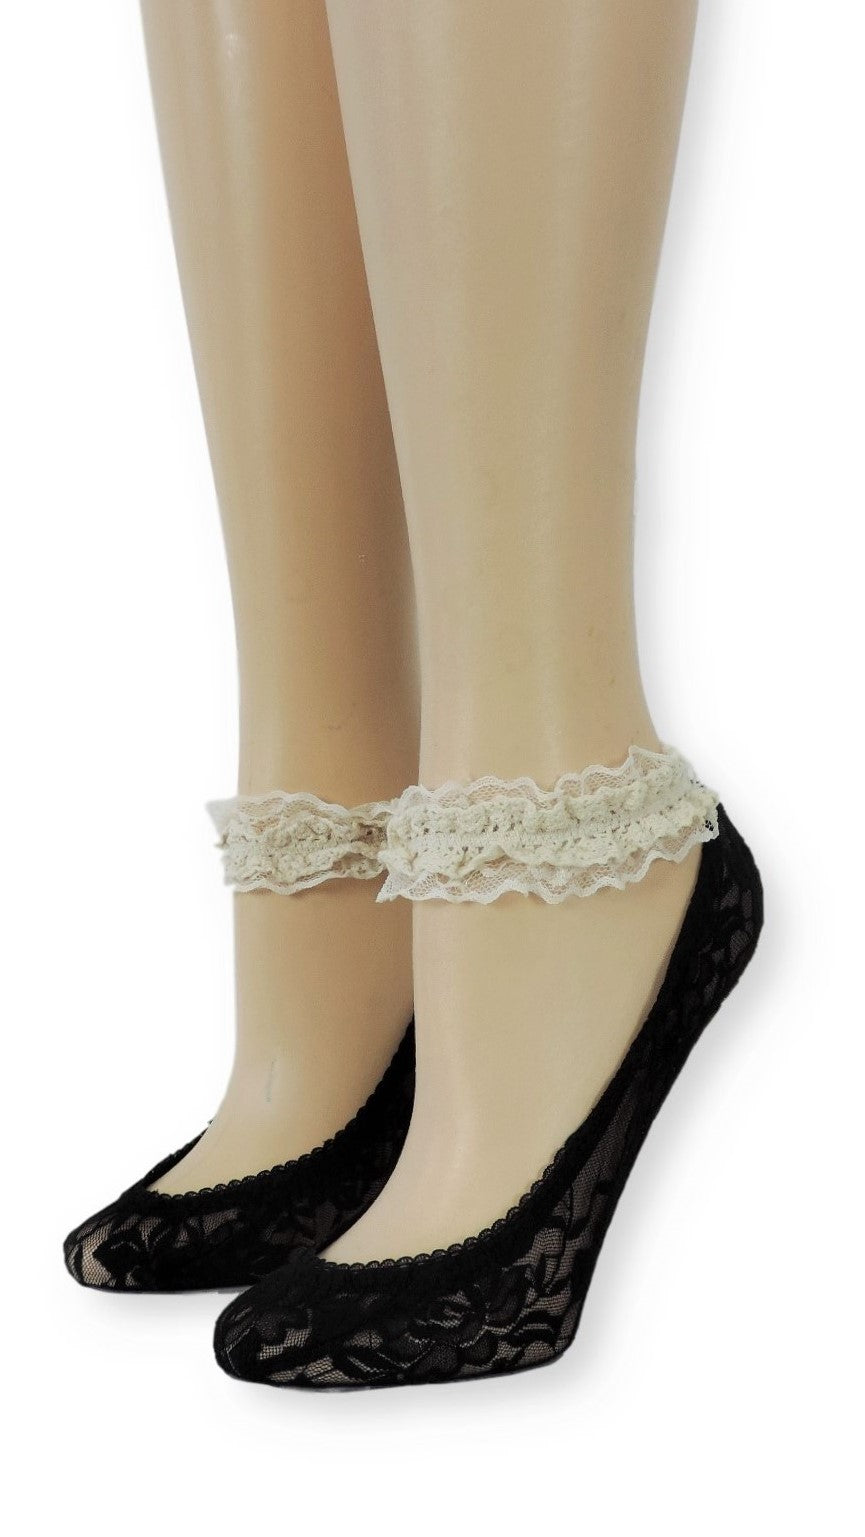 Jade Ankle Mesh Socks with Antique Lace - Global Trendz Fashion®